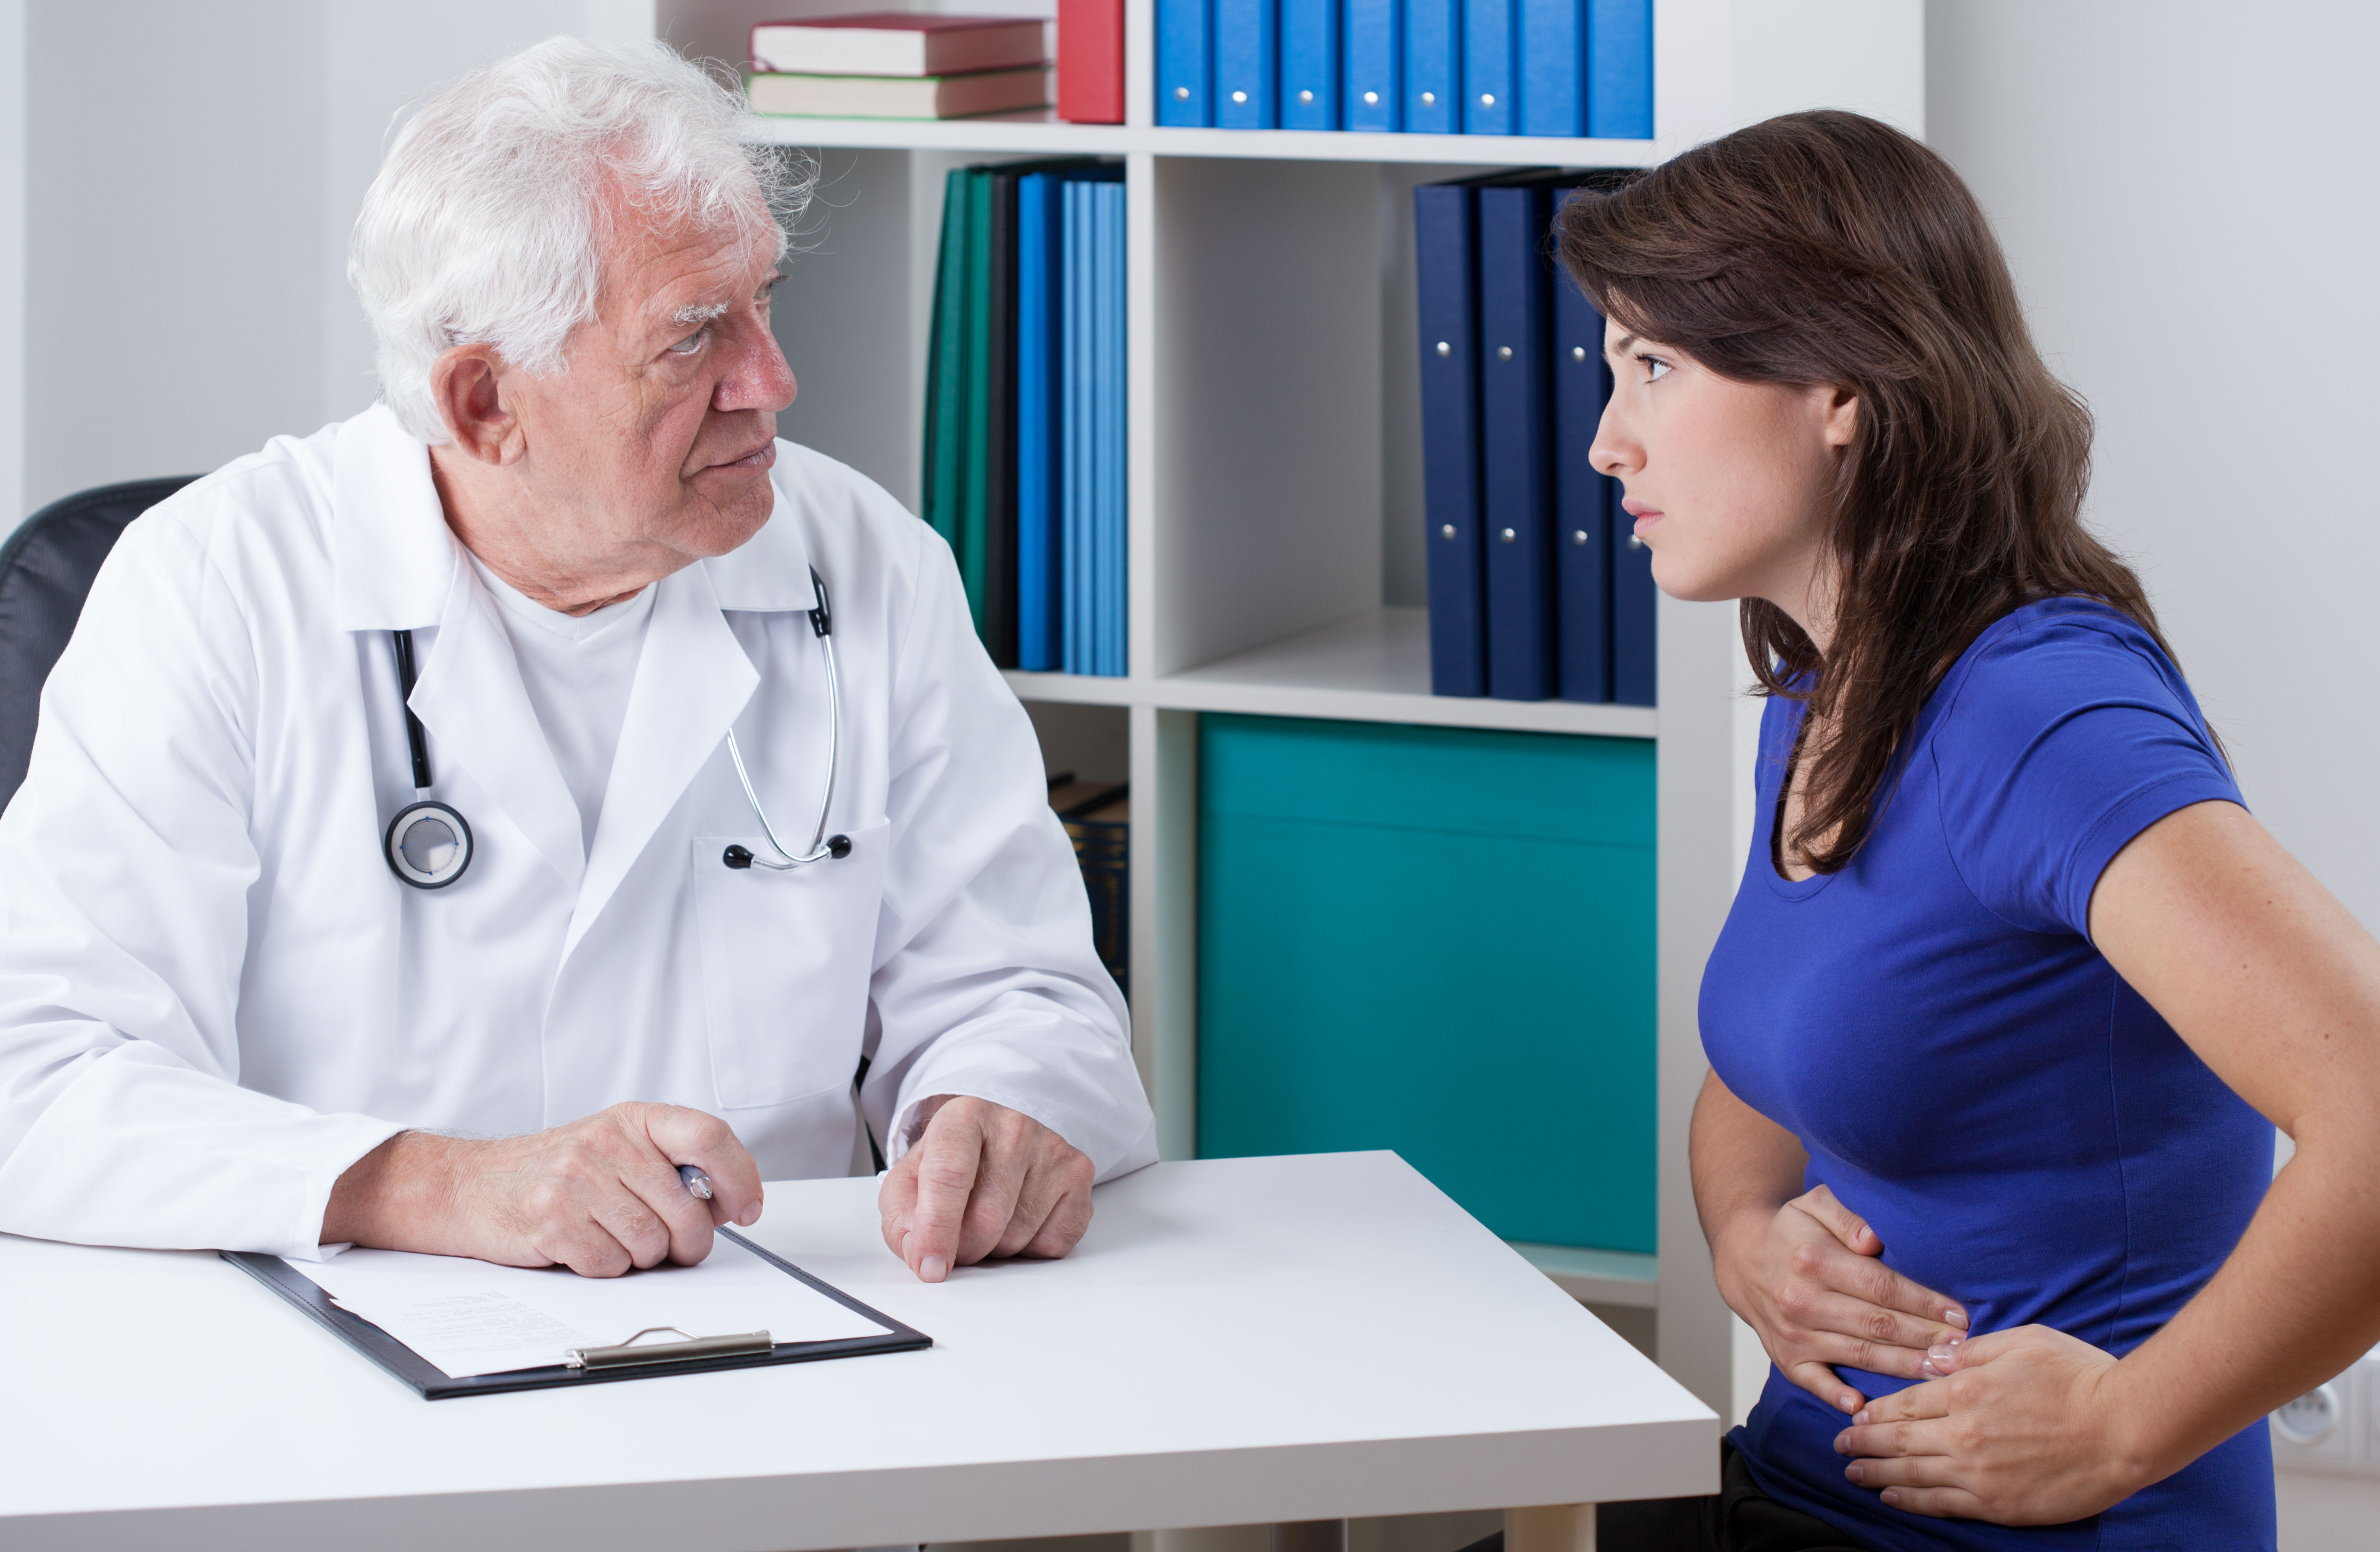 Early Combined Immunosuppression Treatment in Crohn's Disease Found to Improve Disease Course